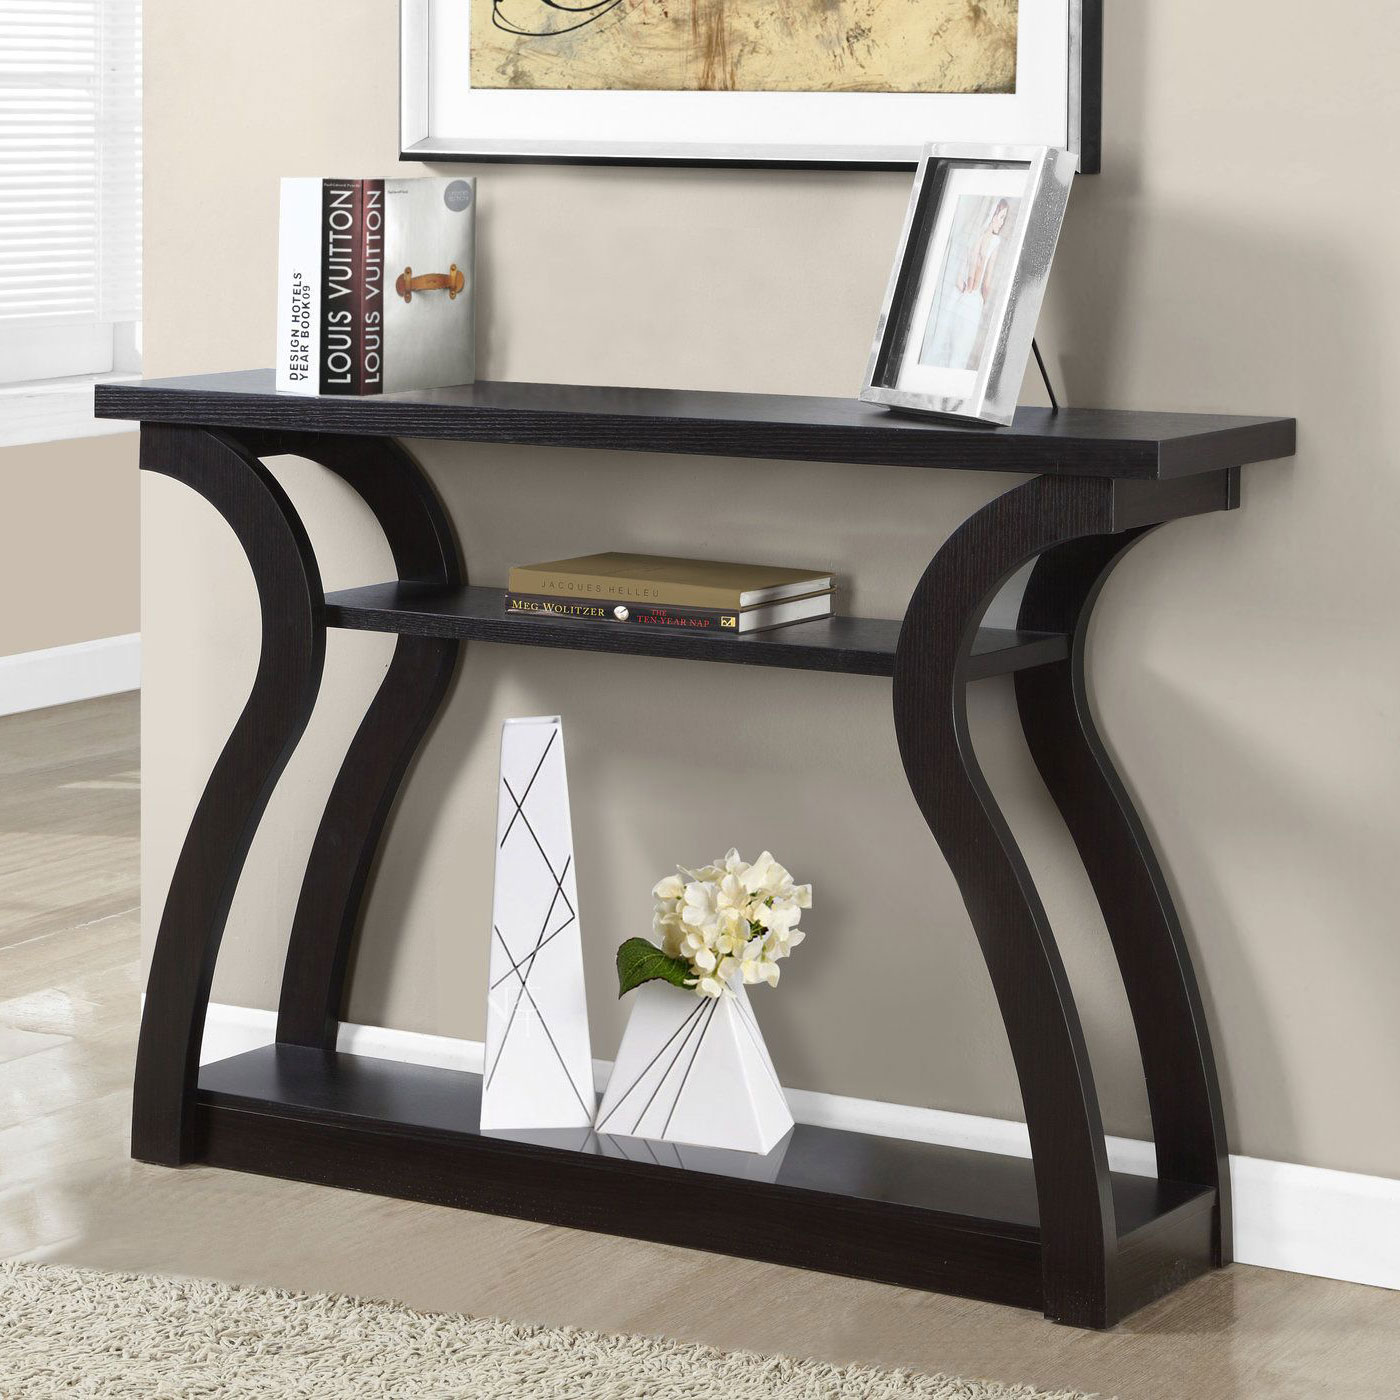 monarch accent table cappuccino hall console with drawers mirrored furniture black wrought iron patio side corner wine rack living room couches office collections copper desk lamp